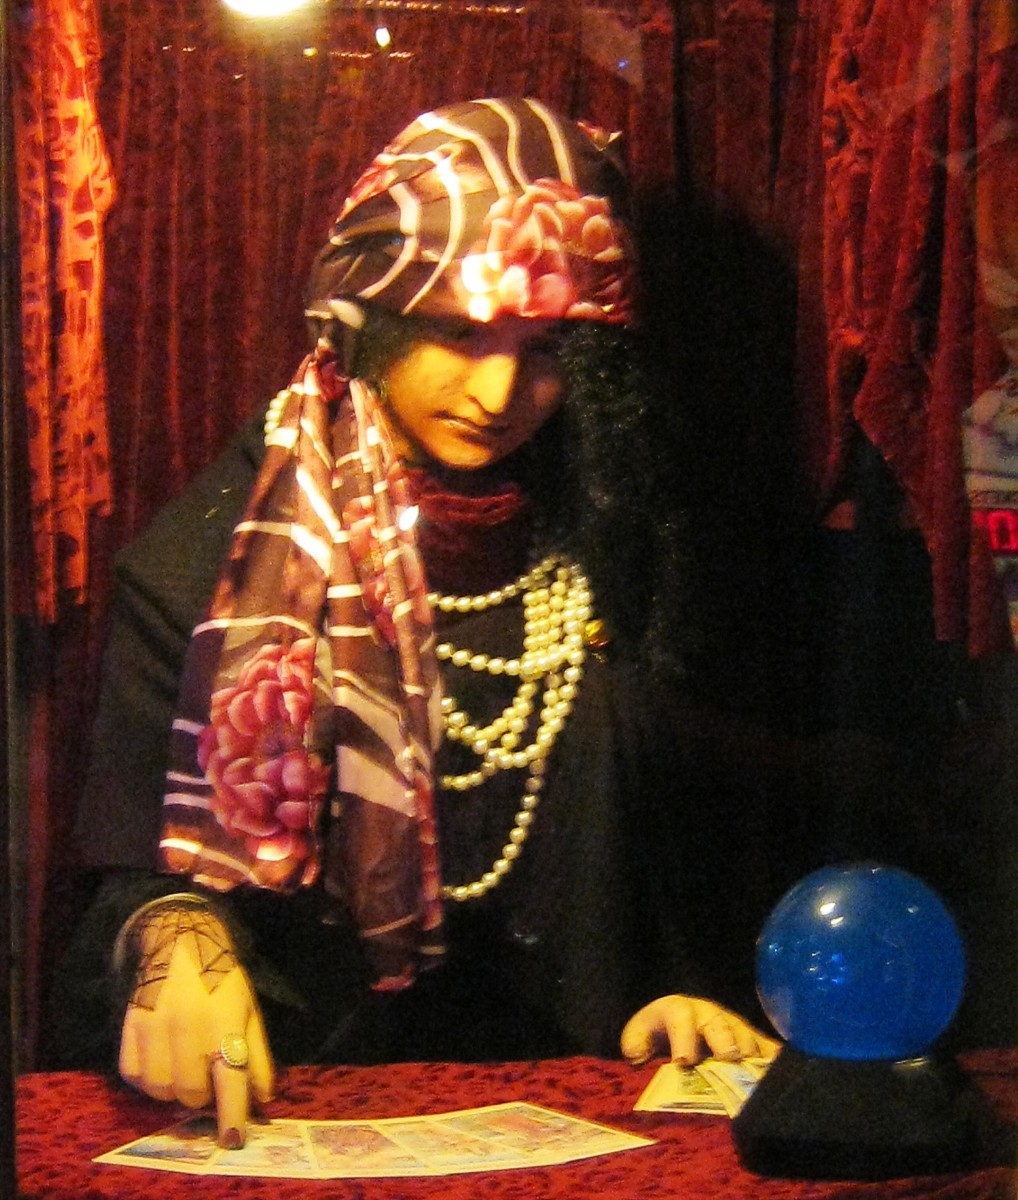 Marty's Playland - an old automated fortune teller